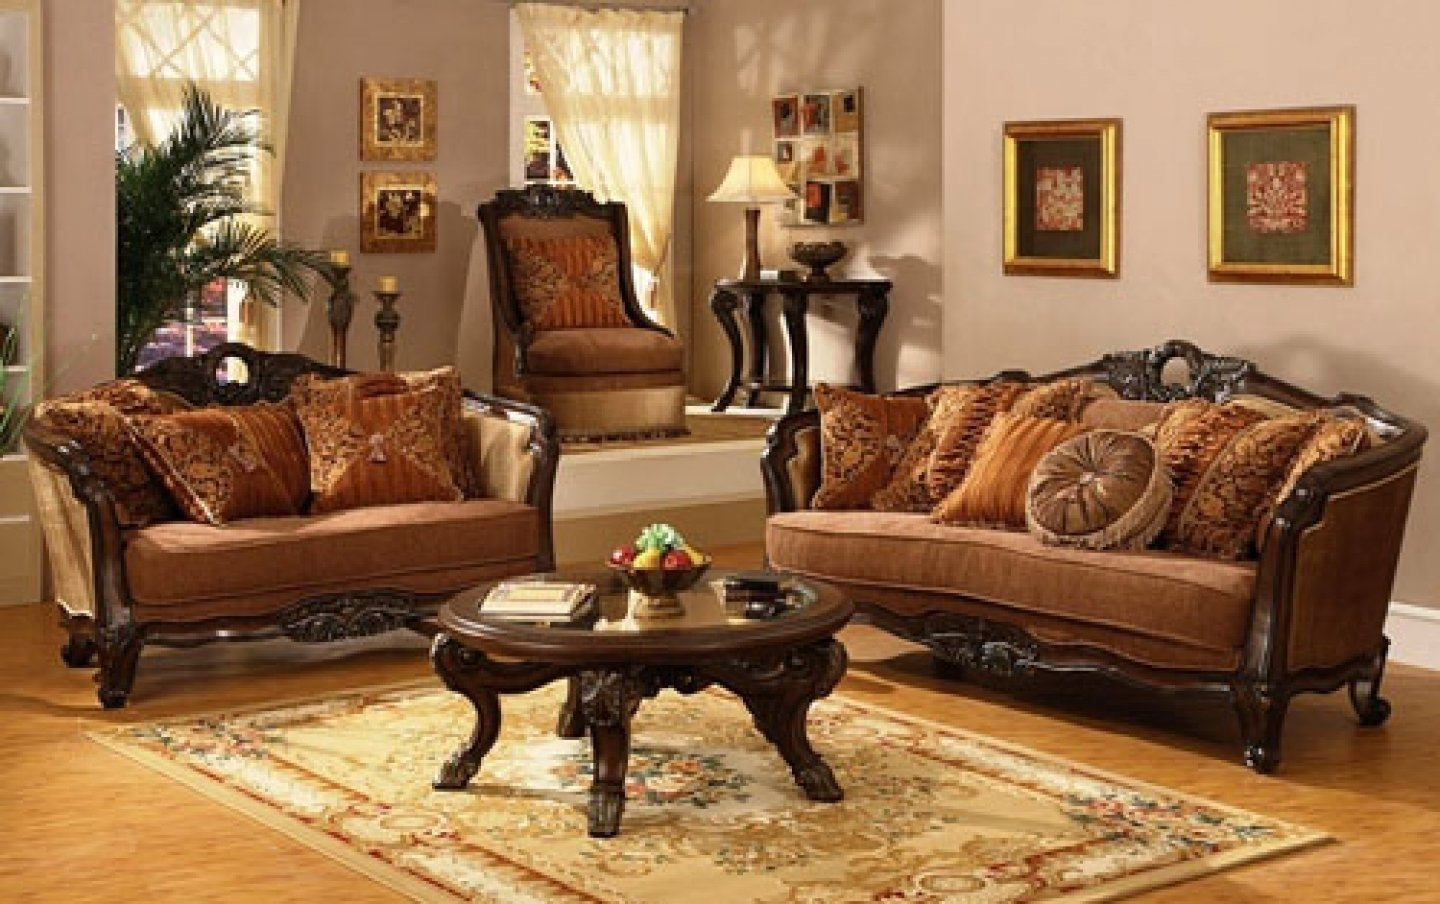 10 Fantastic Living Room Decorating Ideas Traditional traditional living room decorating ideas yhjbuhu decorating clear 2021